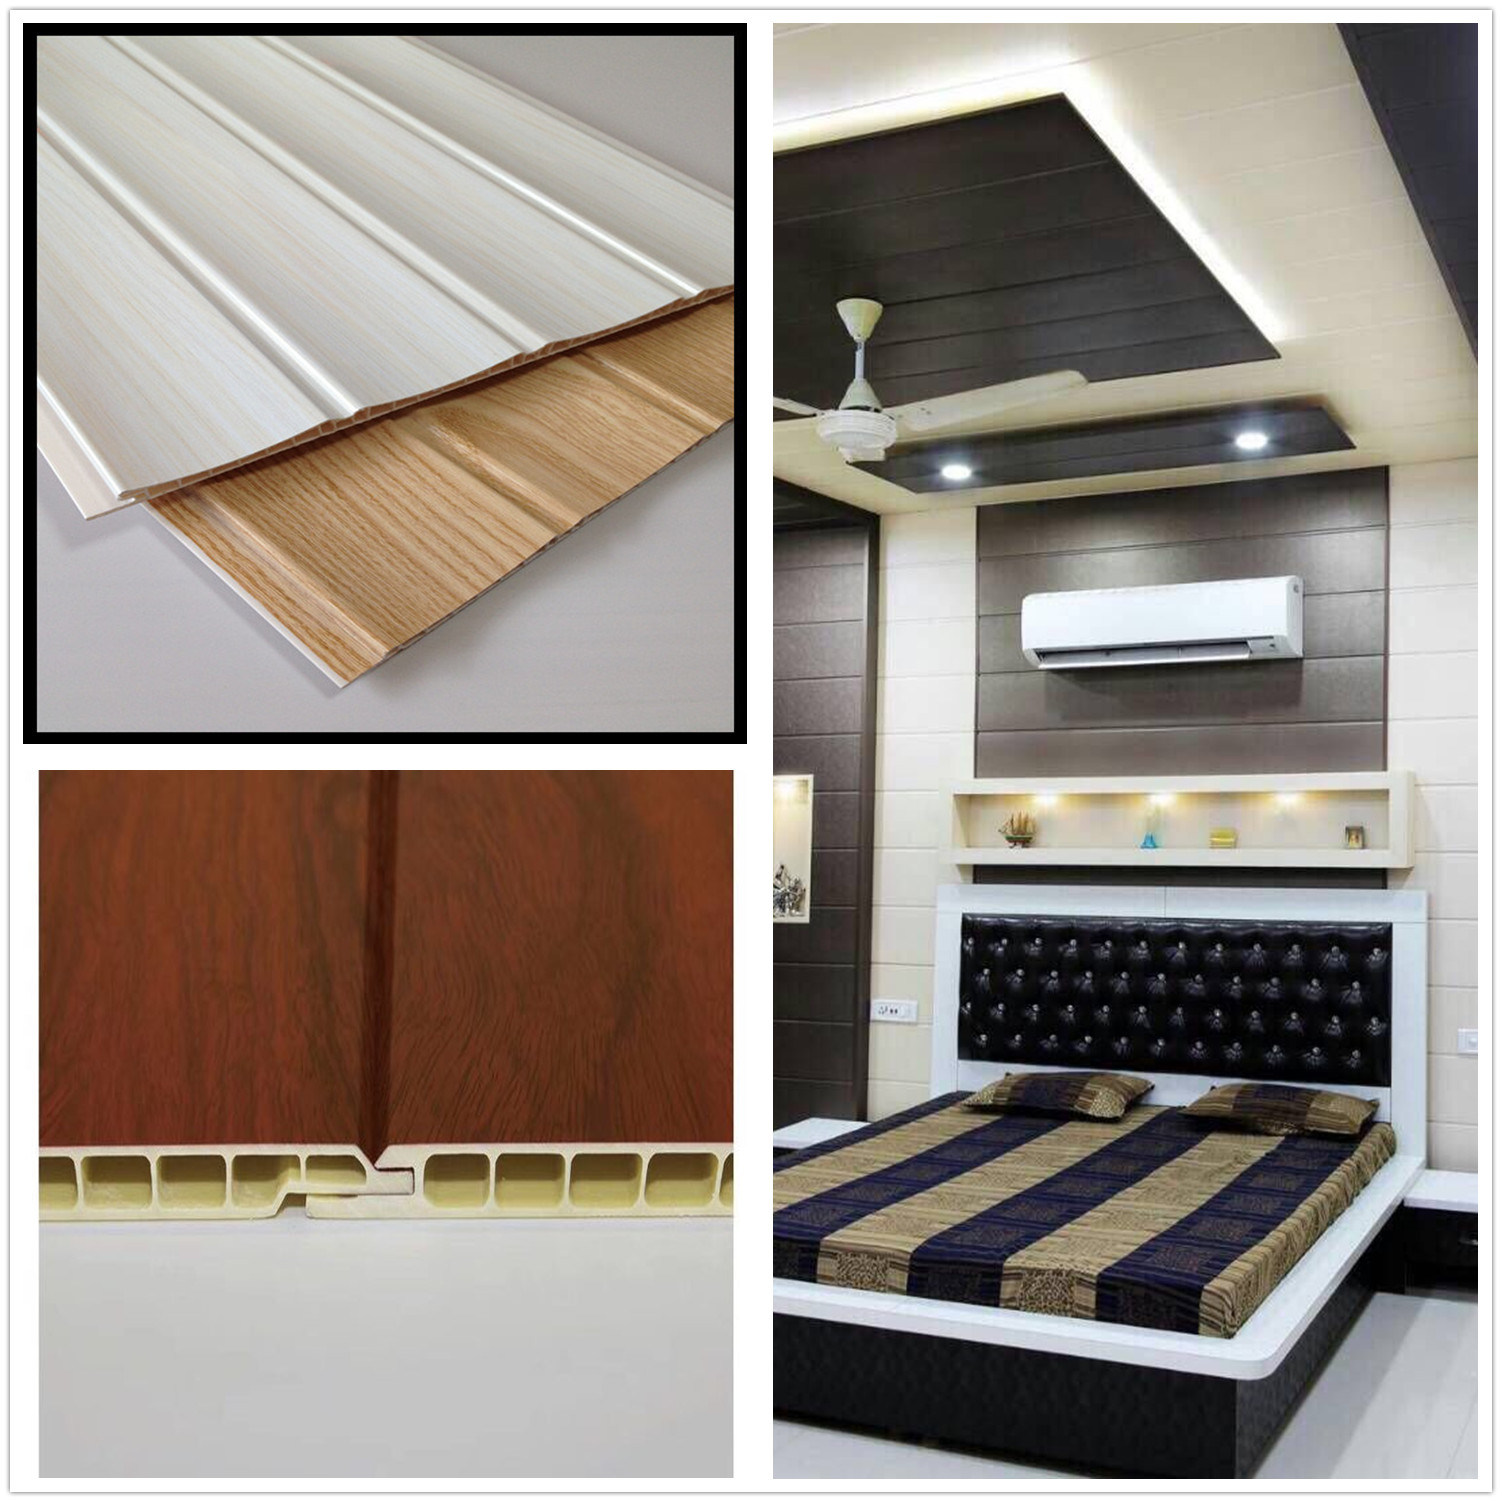 [Hot Item] Building Material PVC Laminated Panel for Wall and Ceiling  Decoration